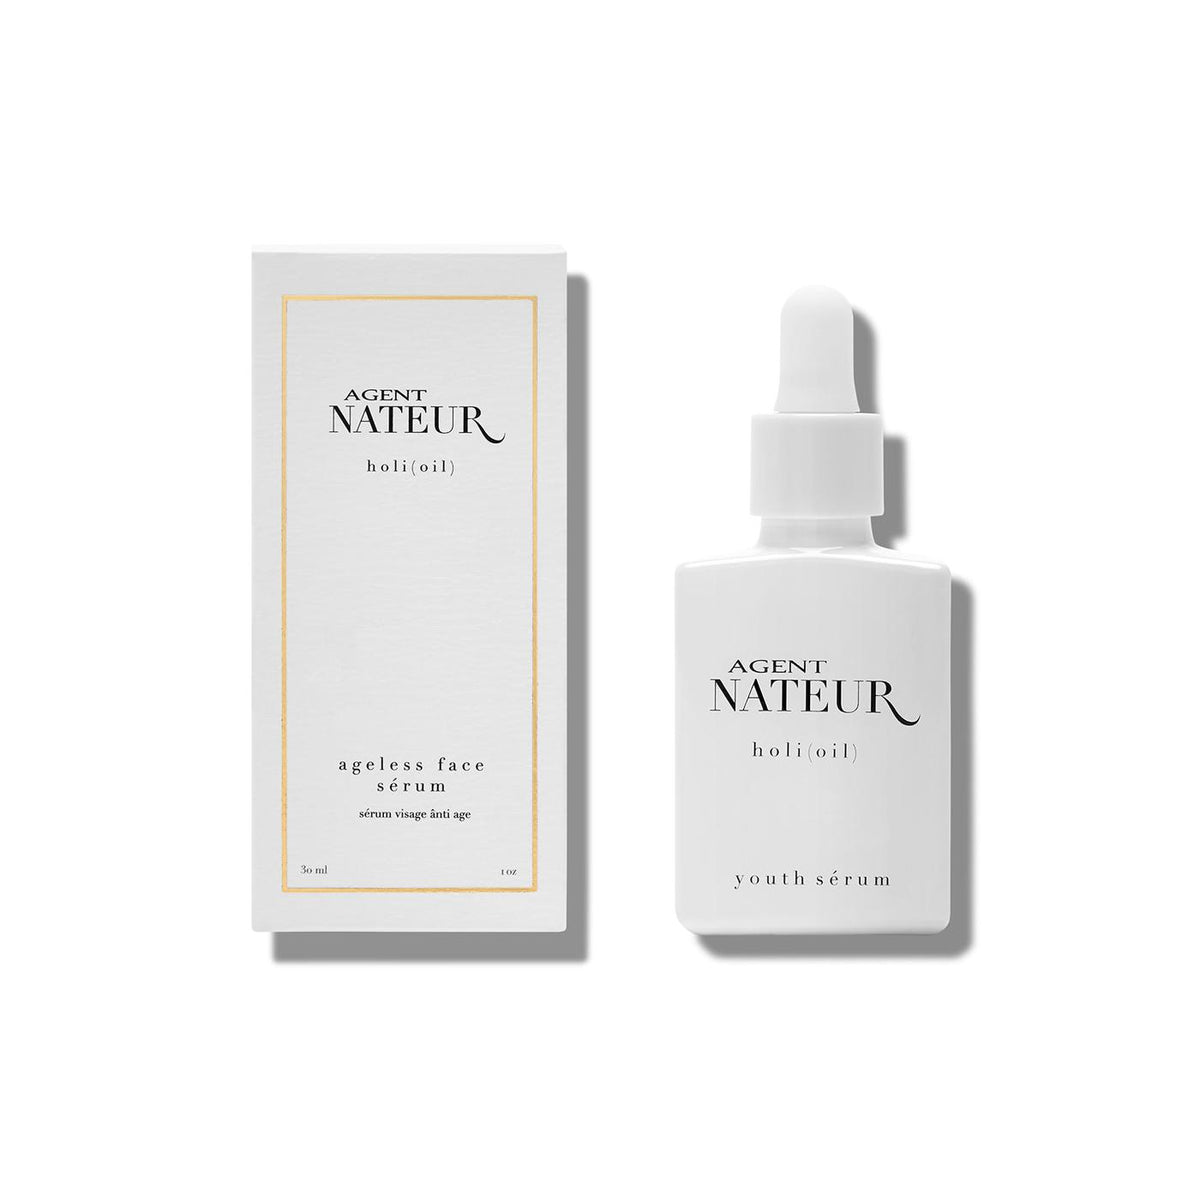 agent nateur | H O L I ( O I L ) - refining youth face serum[product_type ]agent nateur - Kiss and Makeup